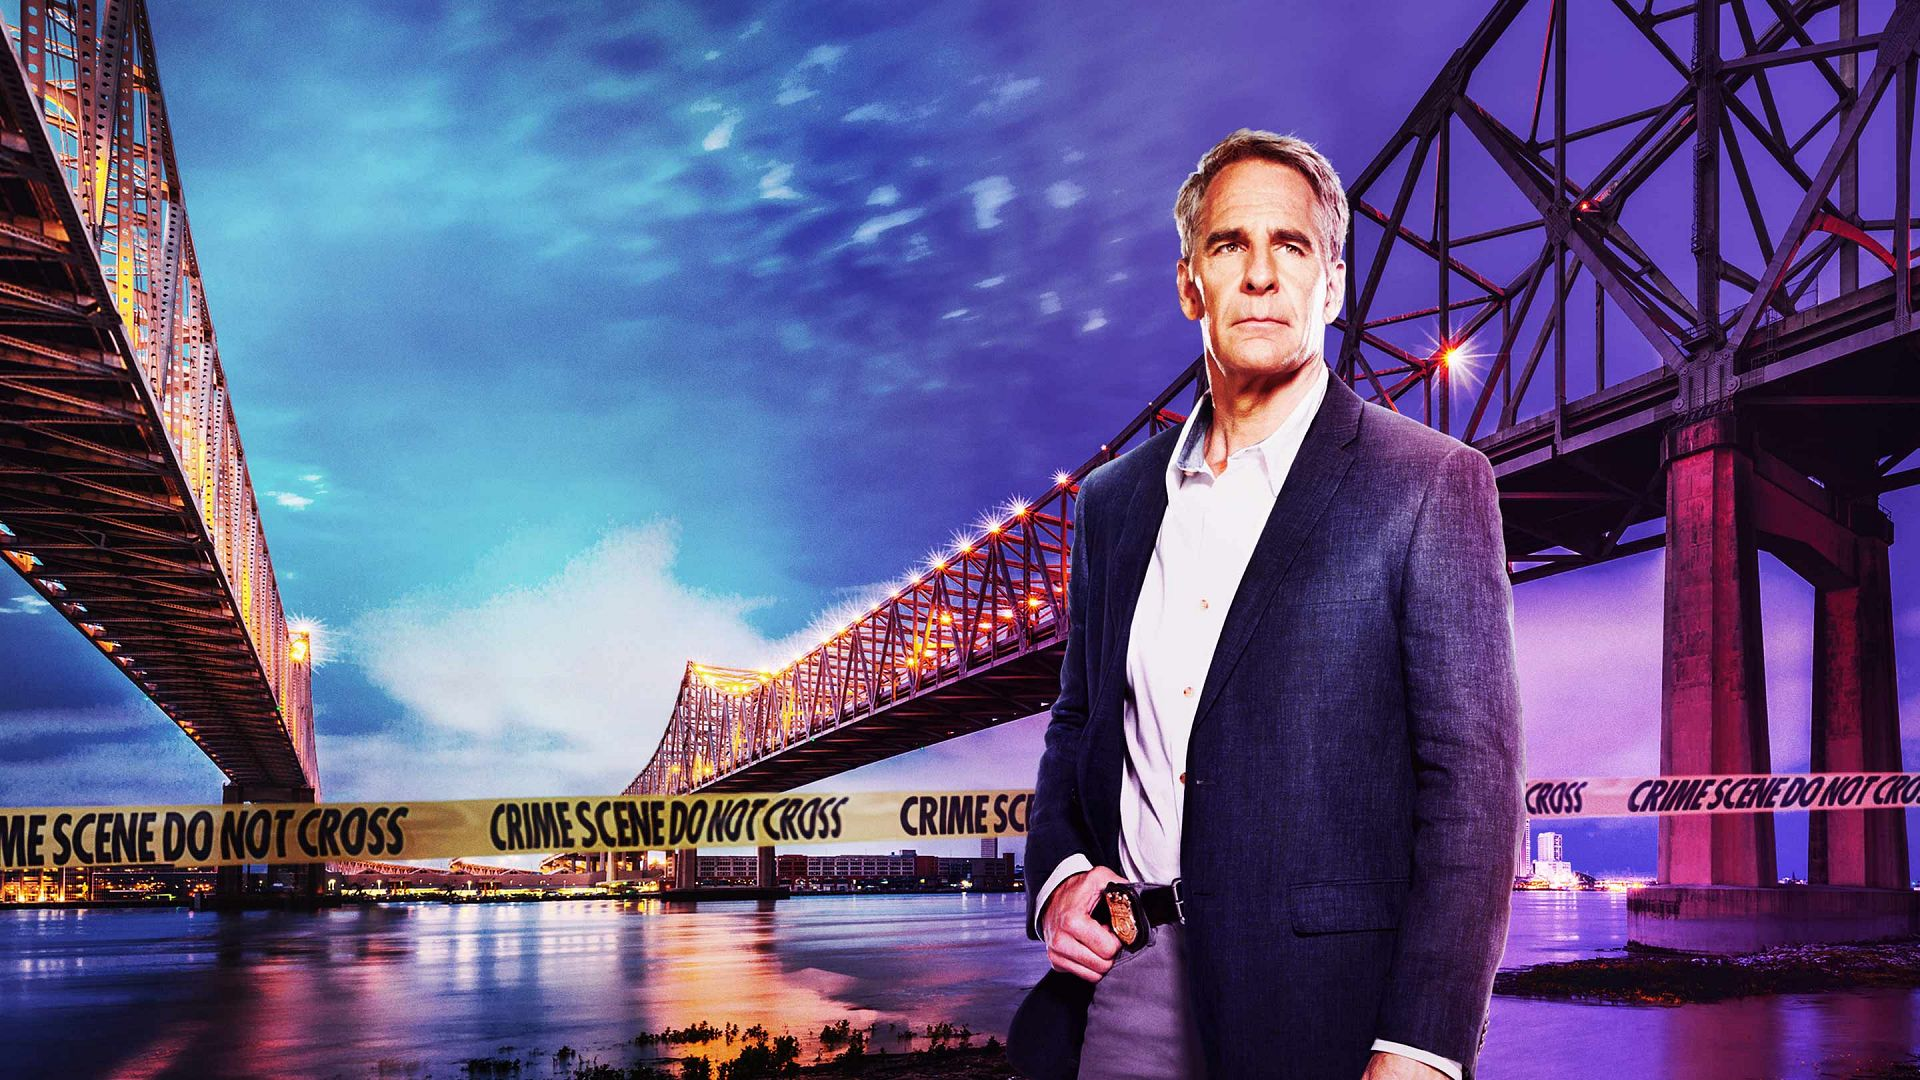 ncis new orleans season 1 watch online free